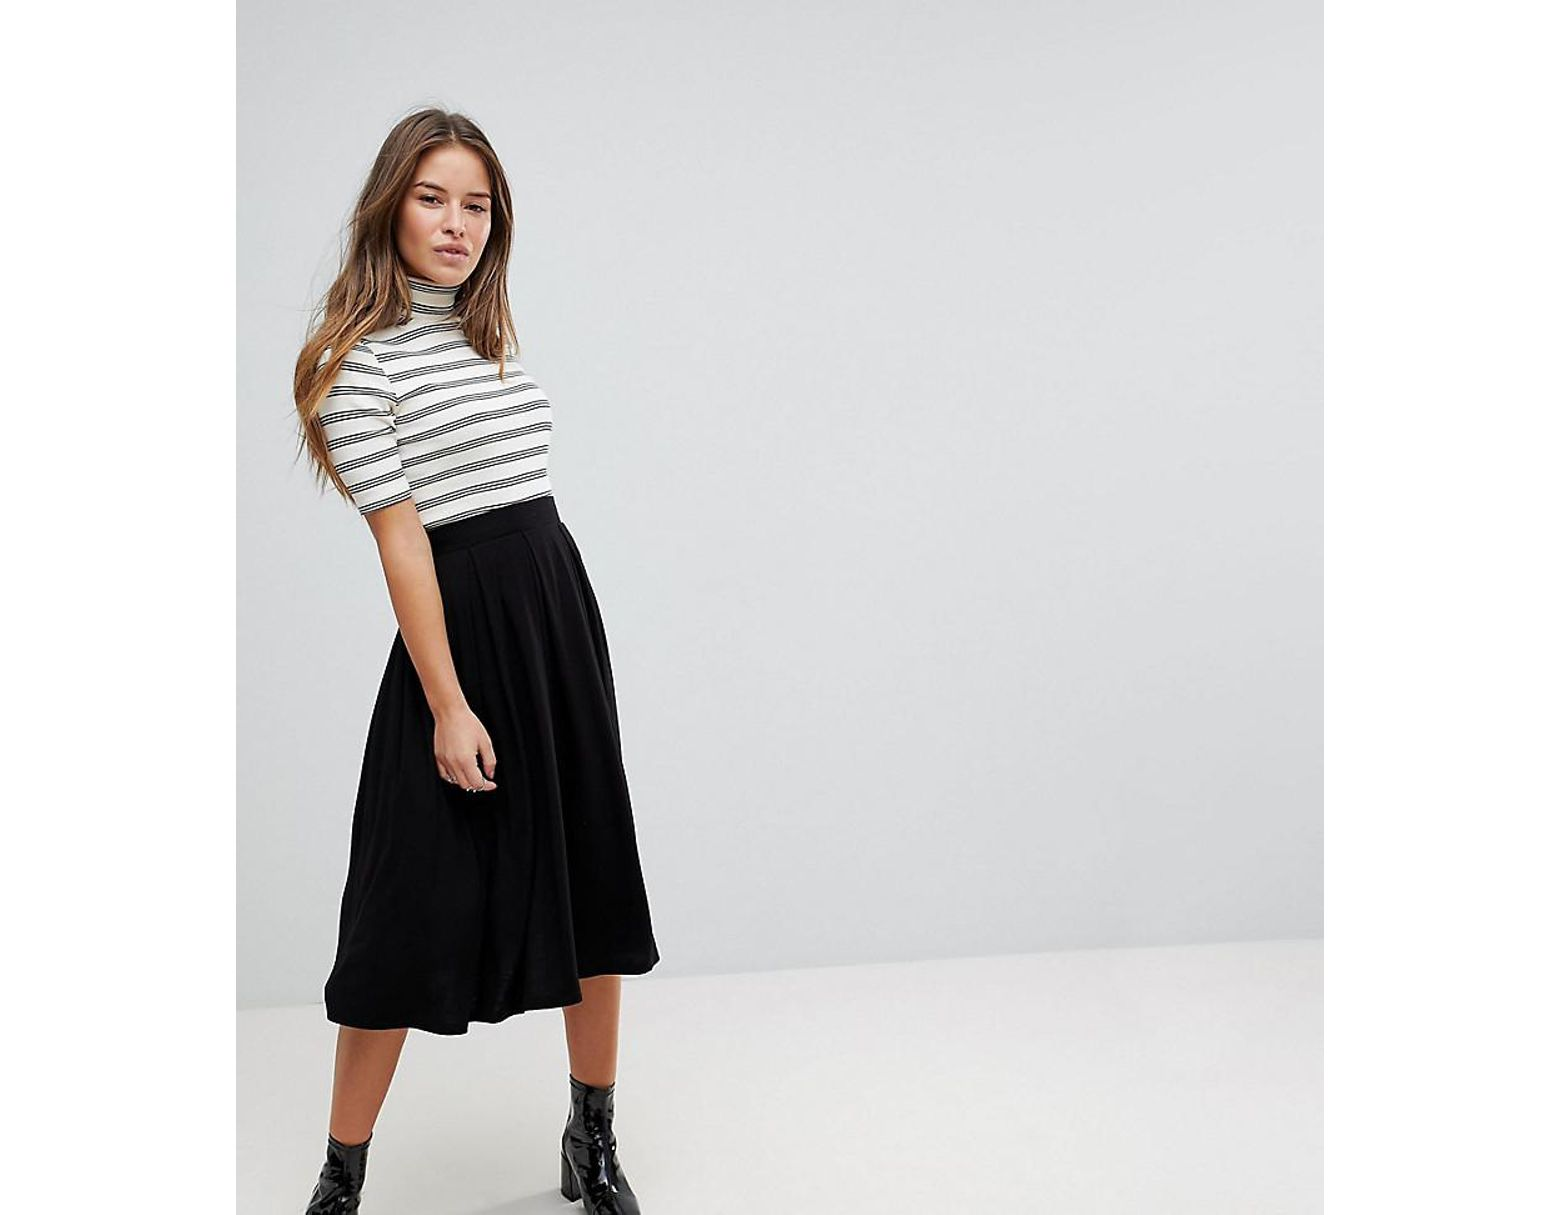 a7d079518 ASOS Asos Design Petite Midi Skirt With Box Pleats in Black - Save 10% -  Lyst